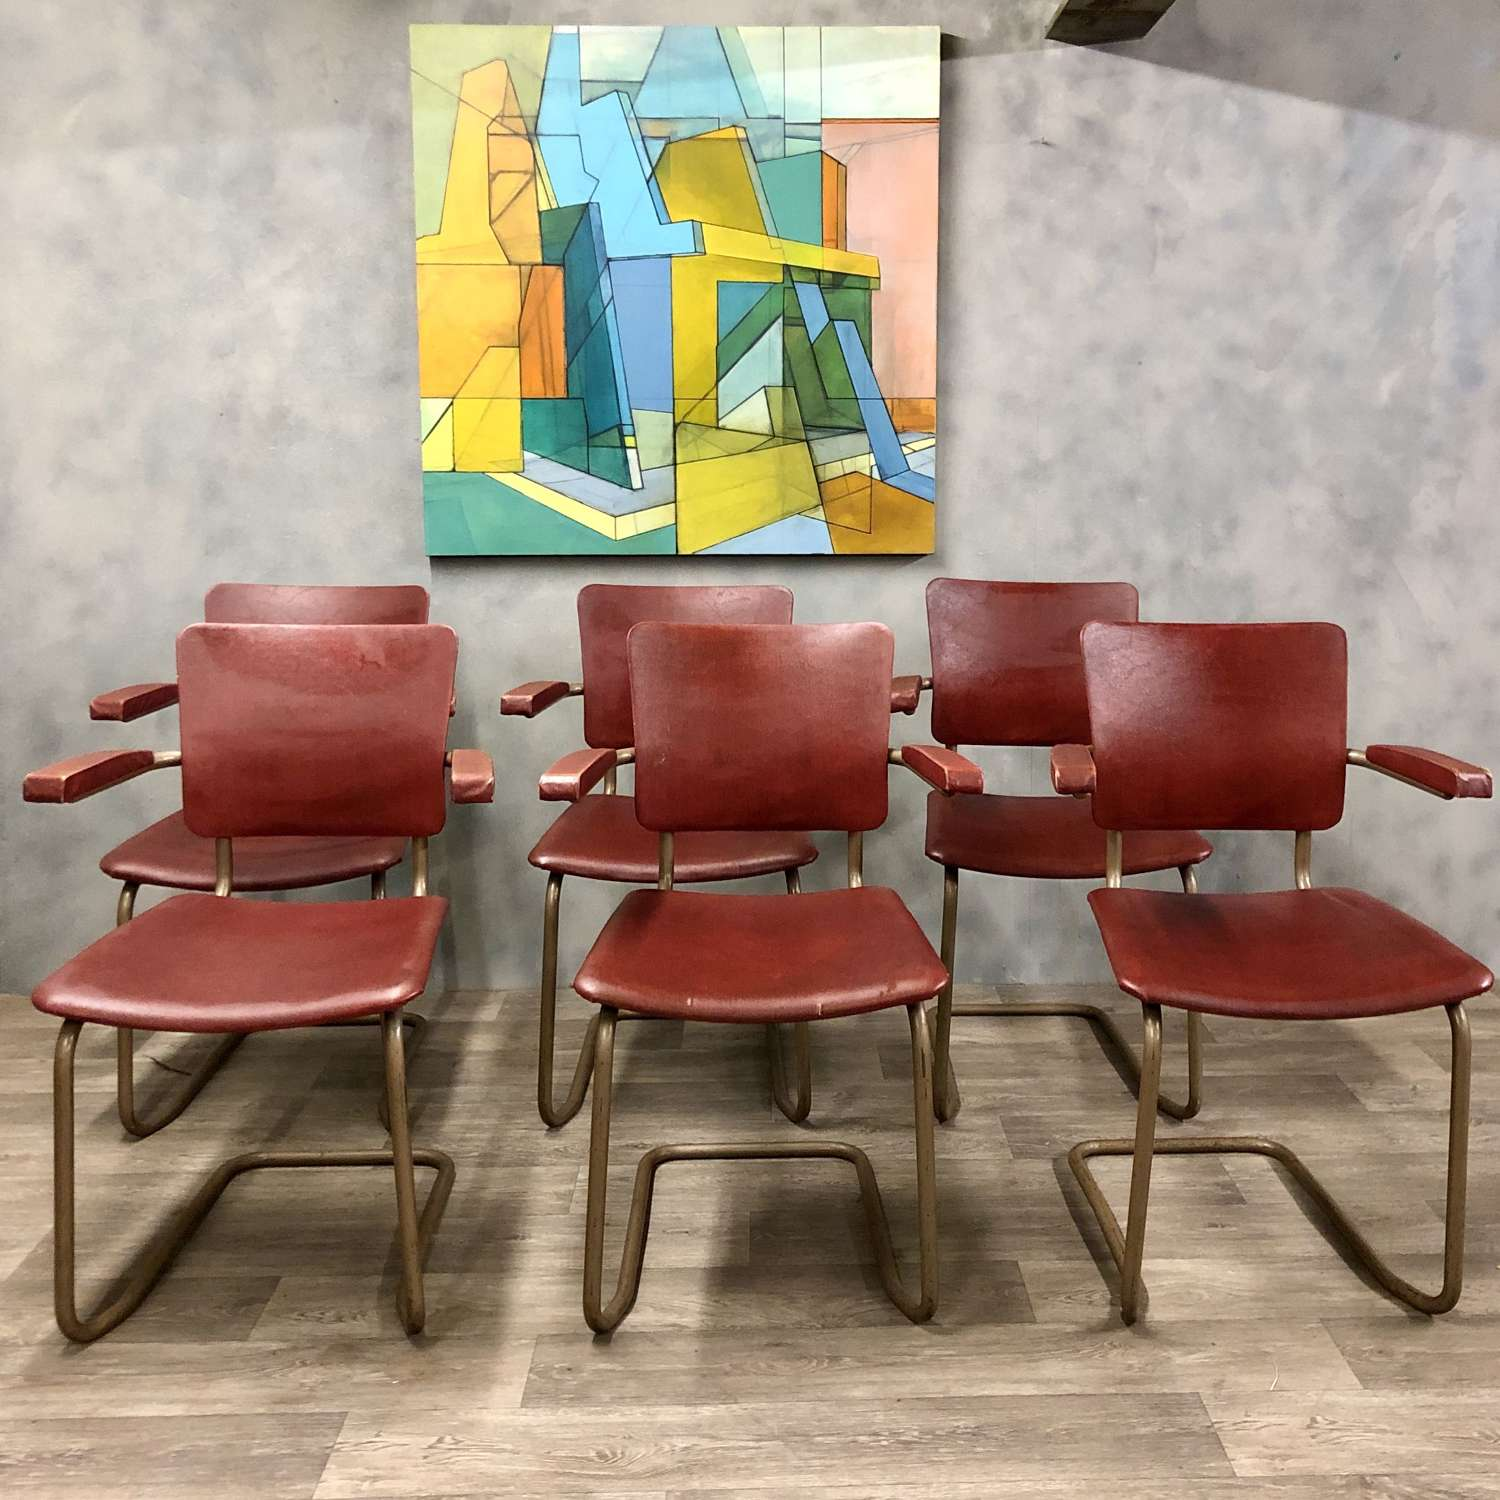 Vintage tubular steel and red vinyl chairs (3 available) French